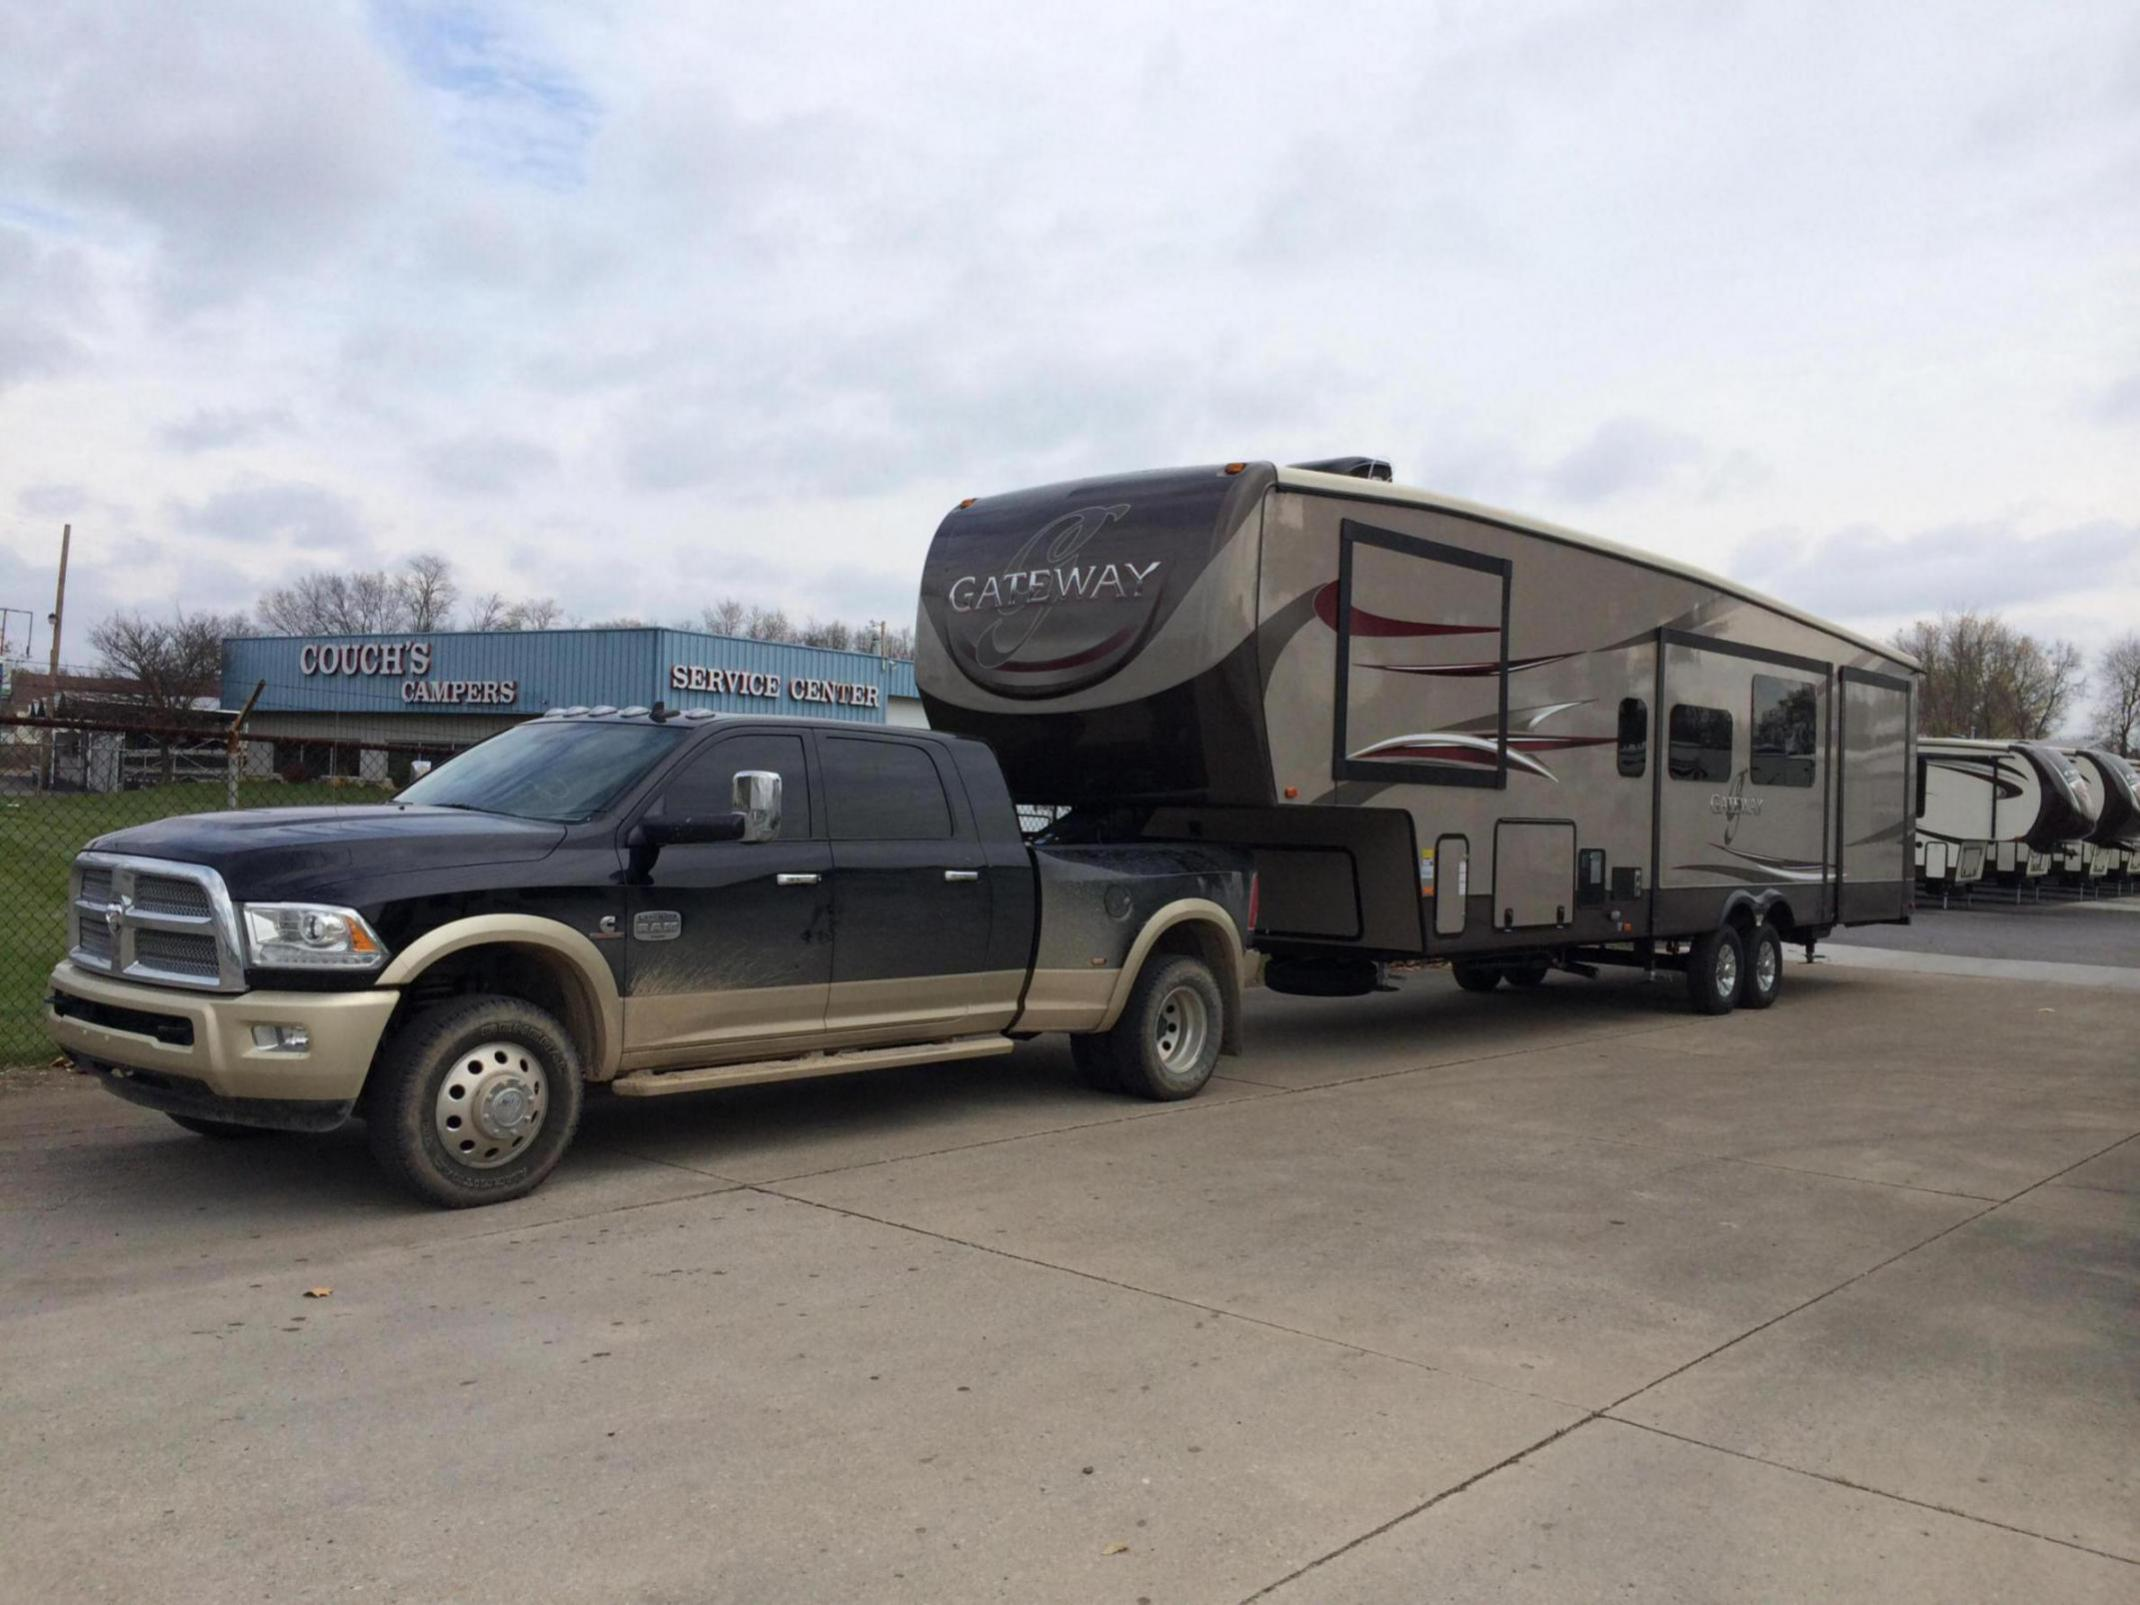 Update Towing 5th Wheel W Megacab Shortbed Dodge Cummins Diesel Wiring Harness For Click Image Larger Version Name 1416021405705 Views 33970 Size 2501